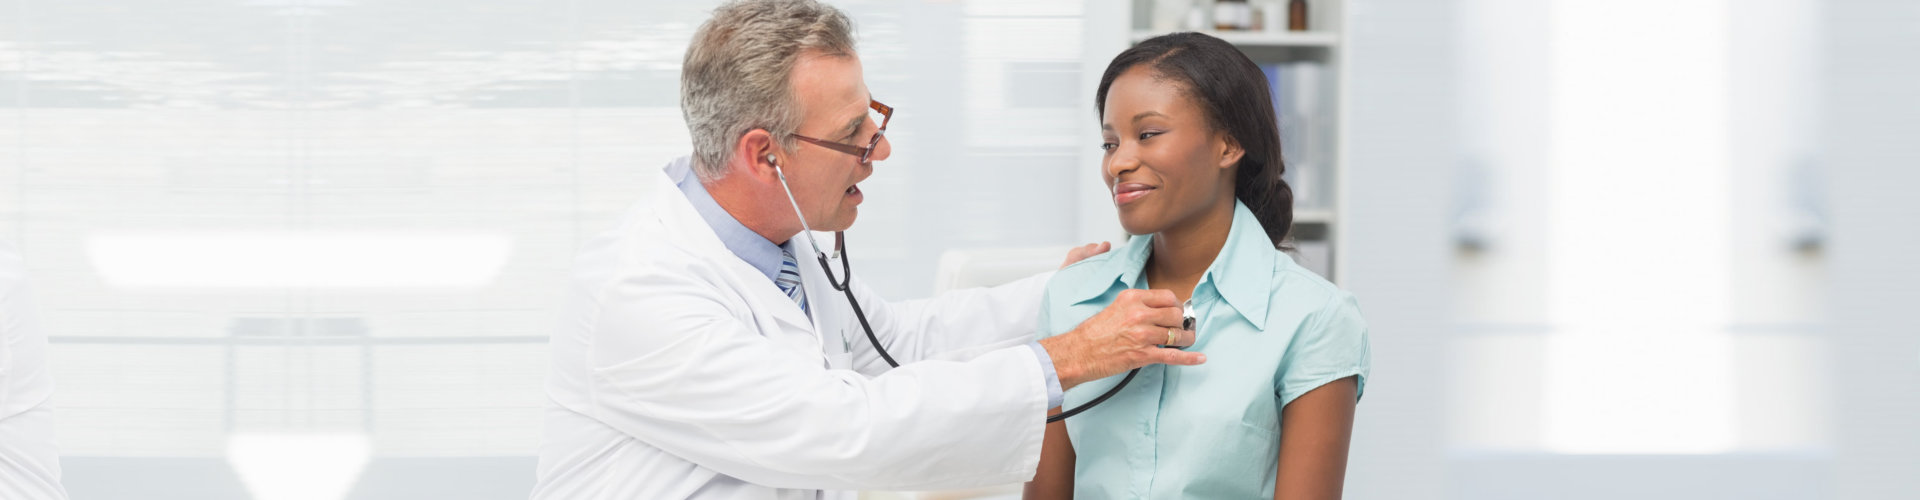 male physician checking up the patient